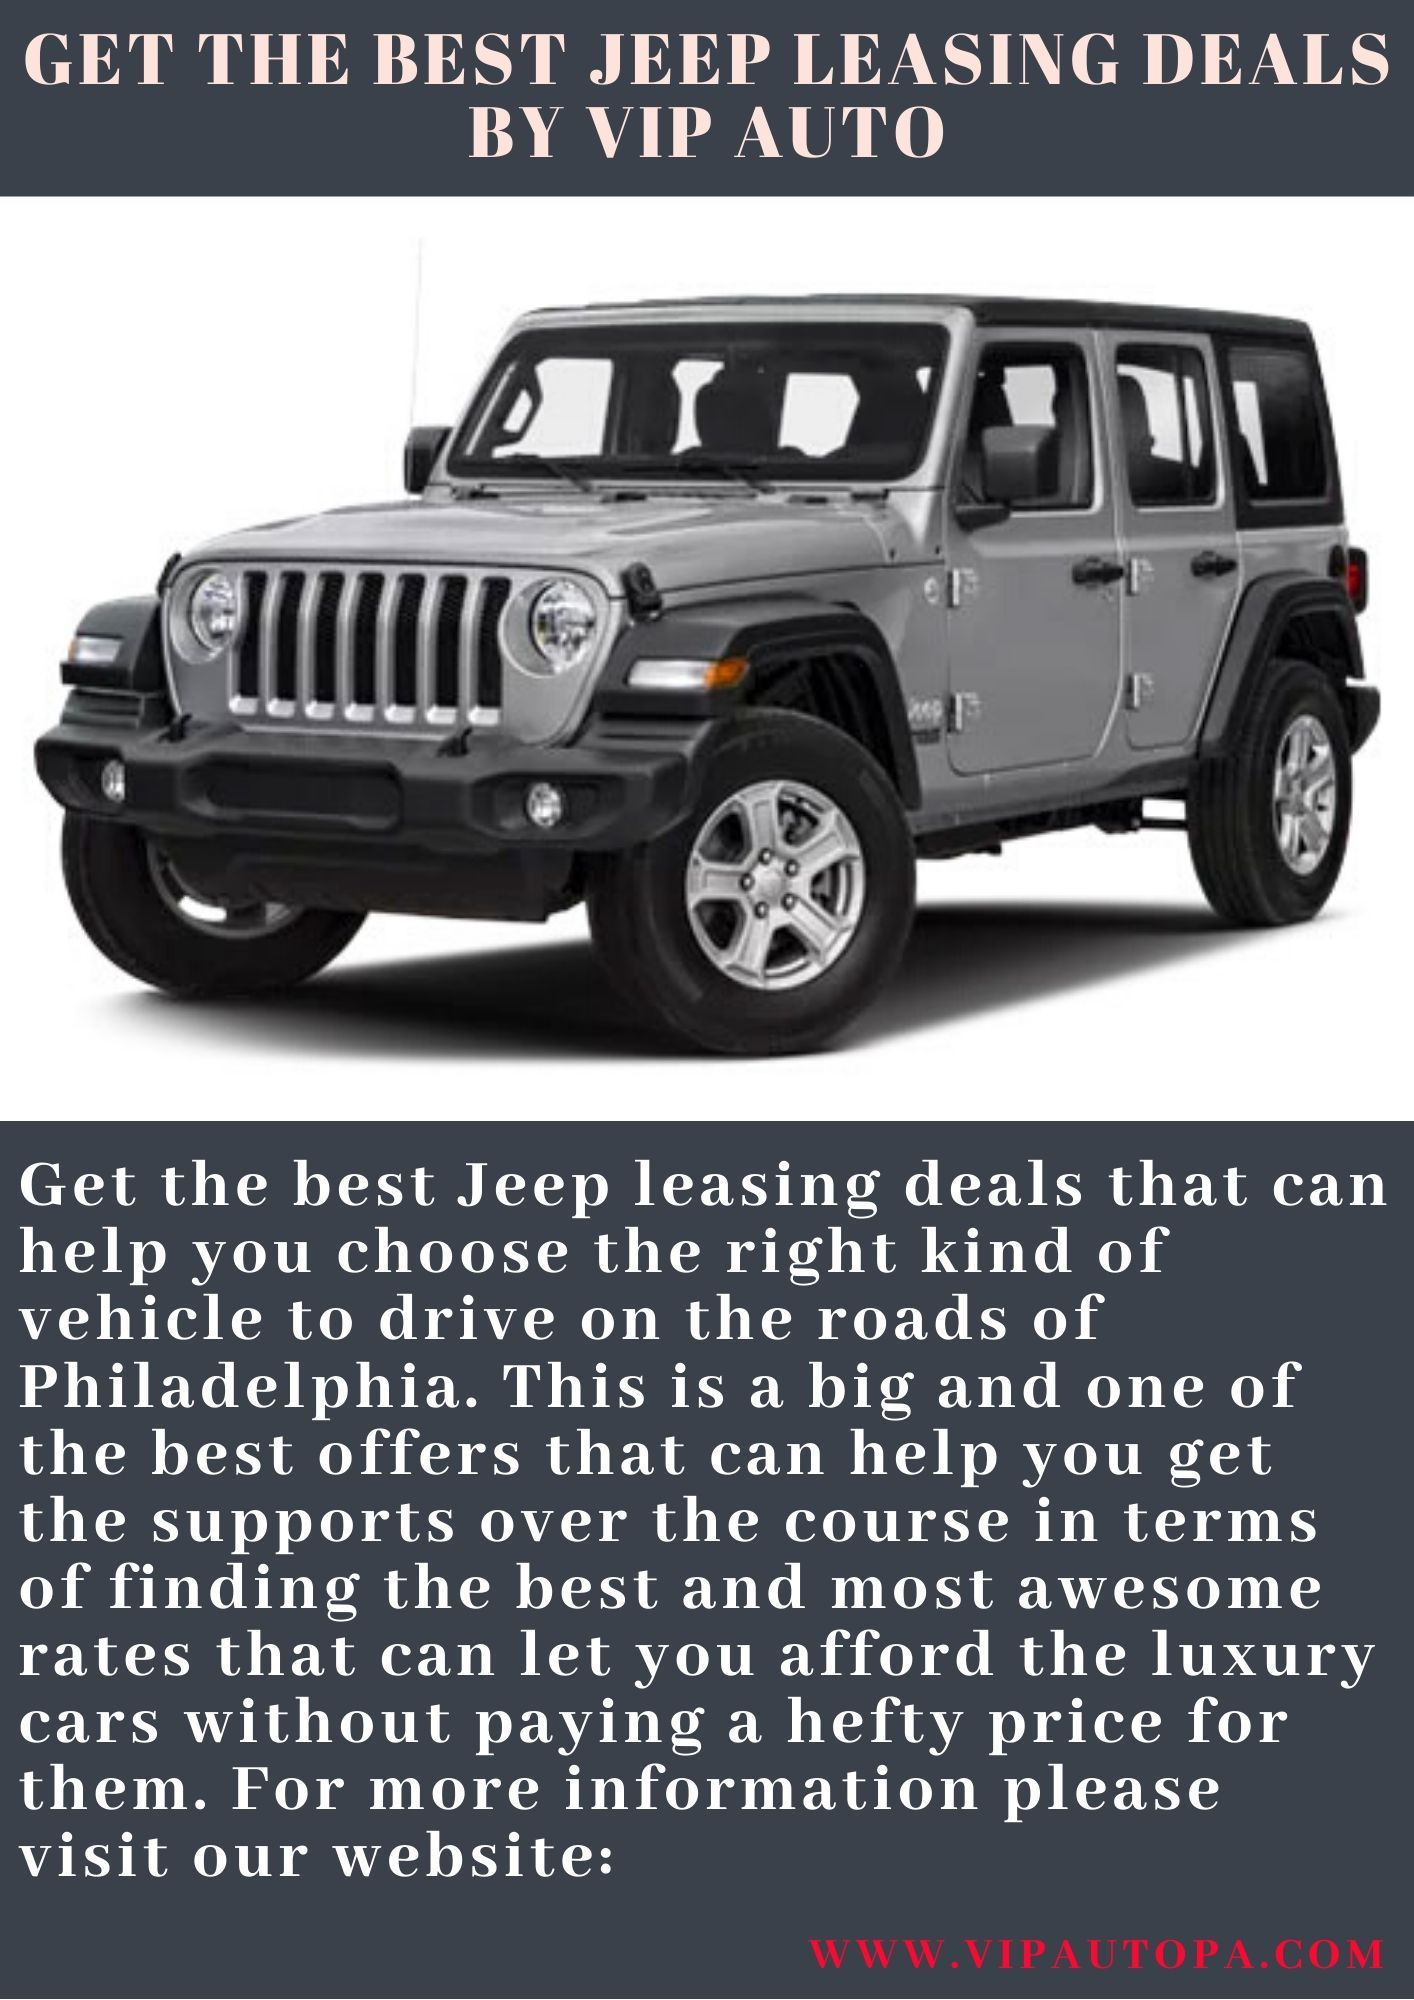 Get The Best Jeep Leasing Deals By Vip Auto In 2020 Cool Jeeps Jeep Good Things